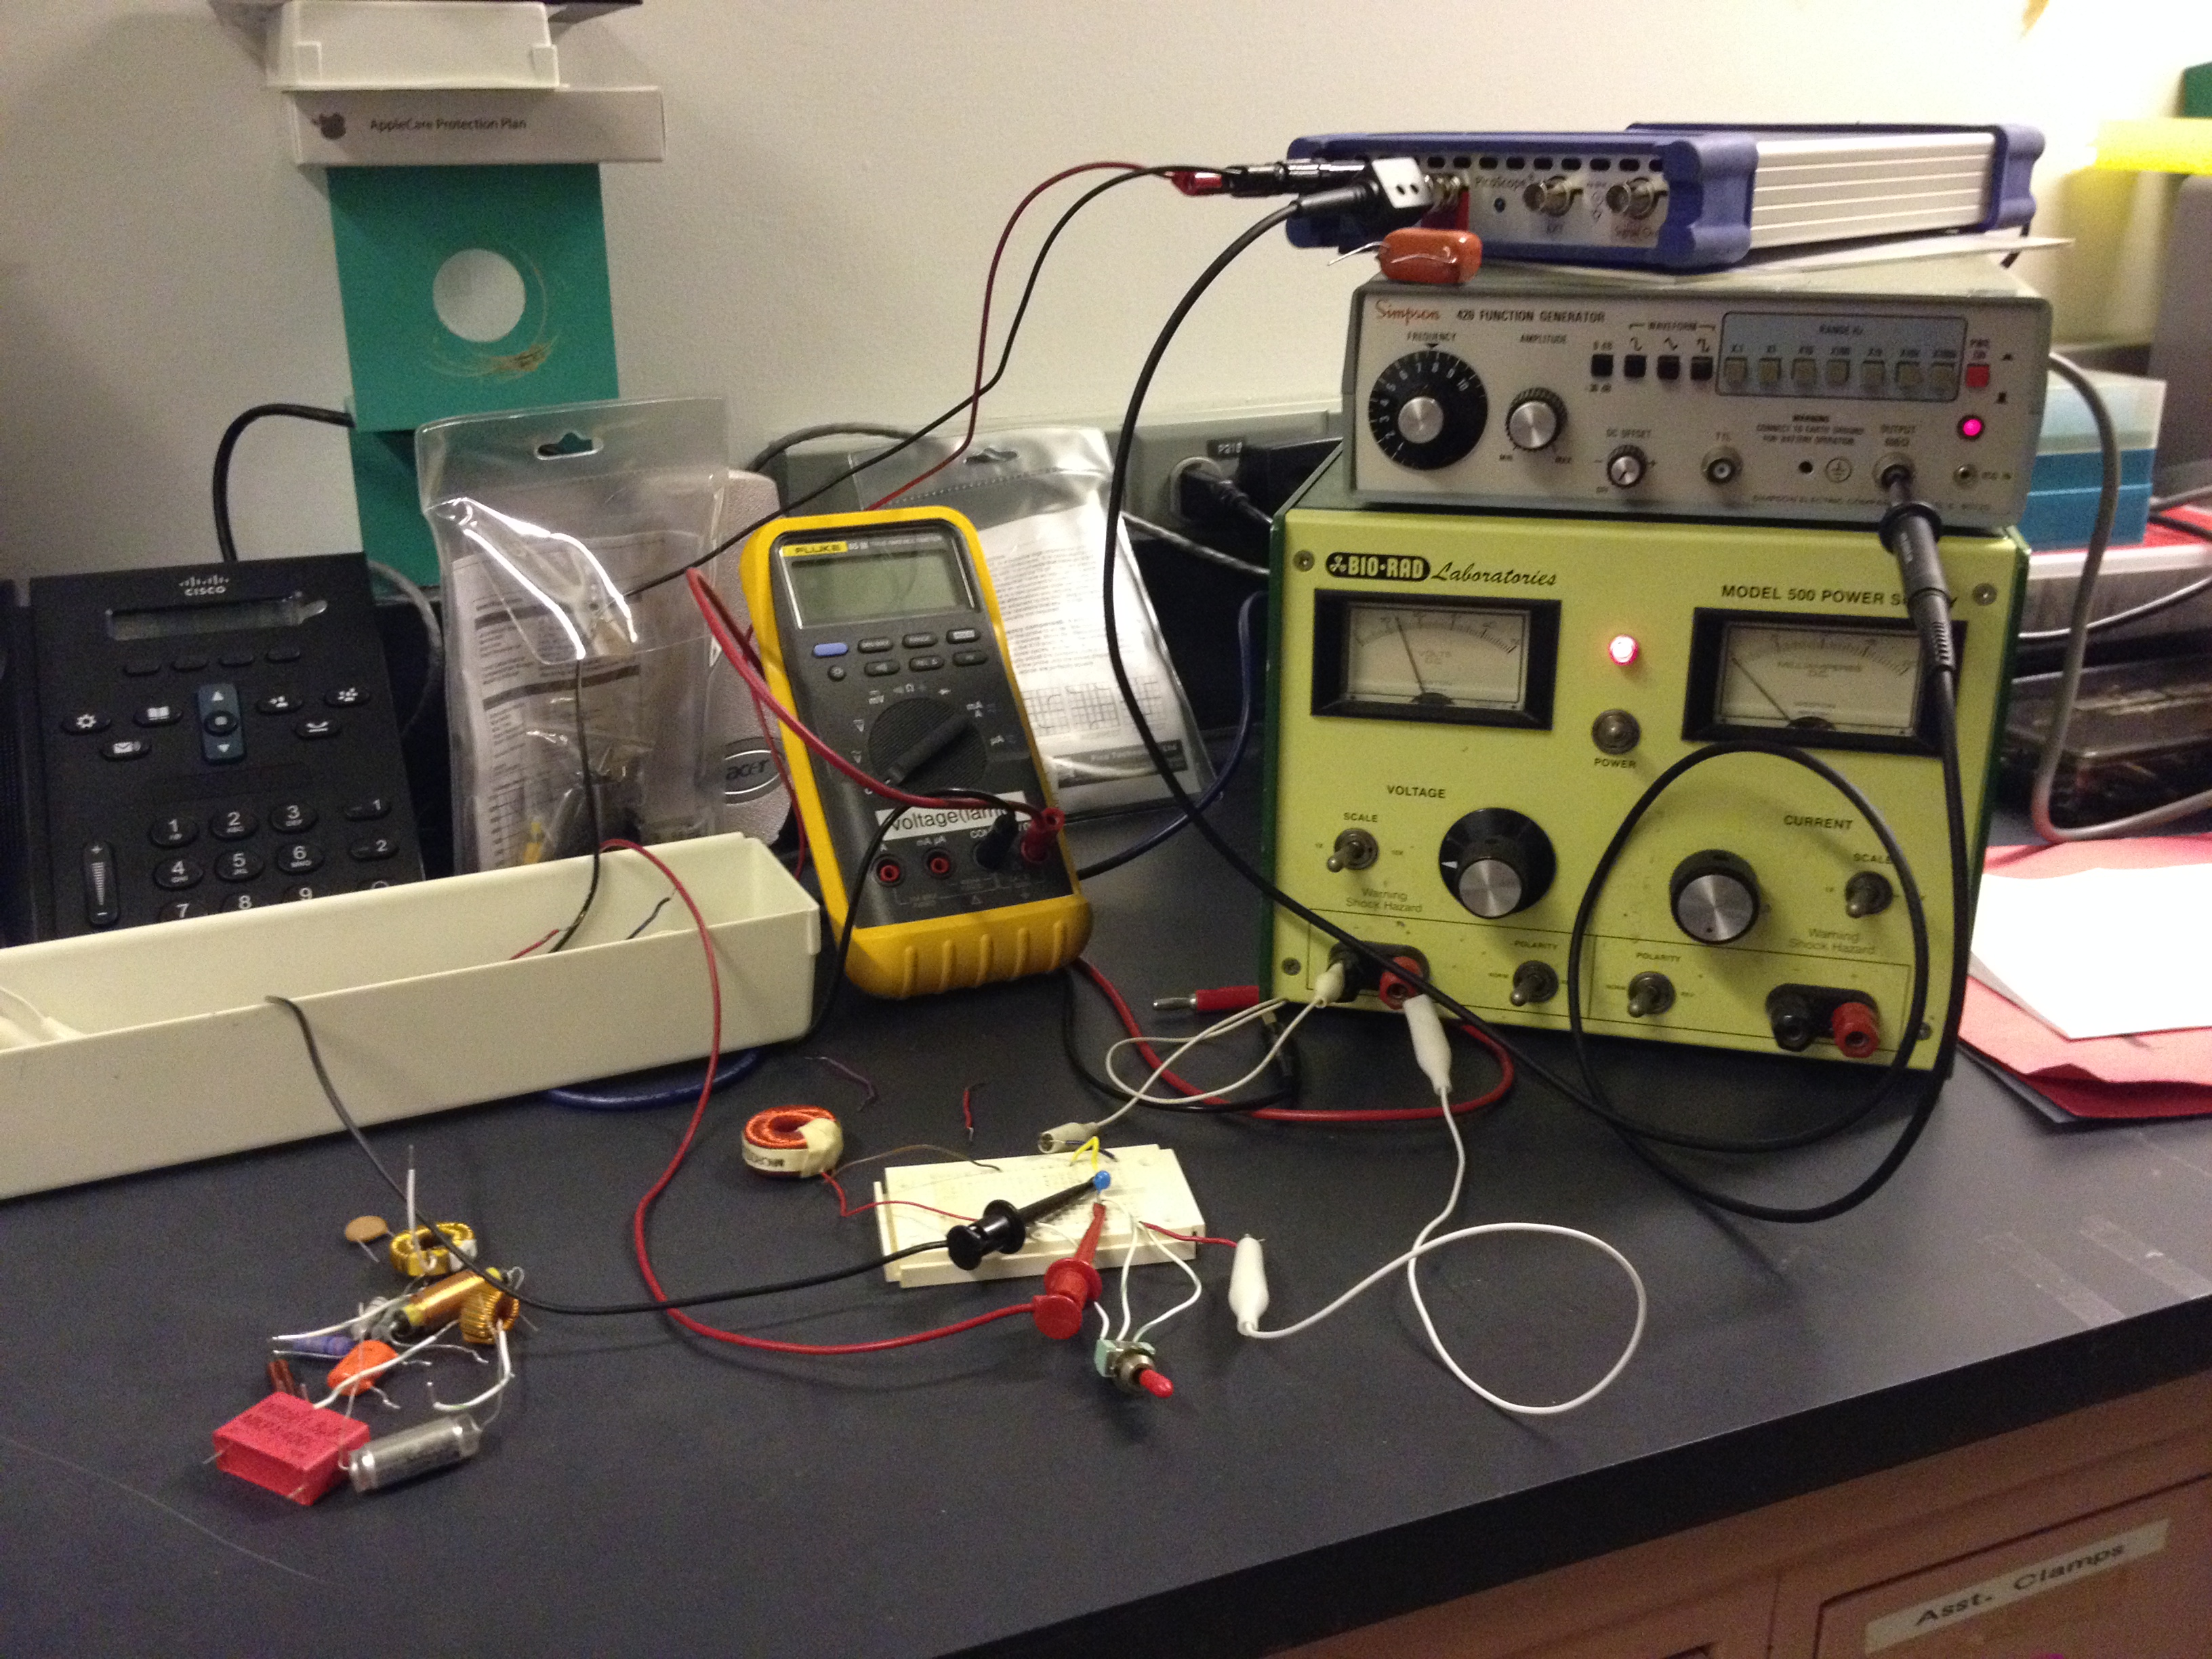 Matteo Modeling And Experimental Tools With Prof Magnes Rlc Series Circuit As Well Discharging Rc Equation Also Dc Power Source Signal Generator Oscilloscope Multimeter